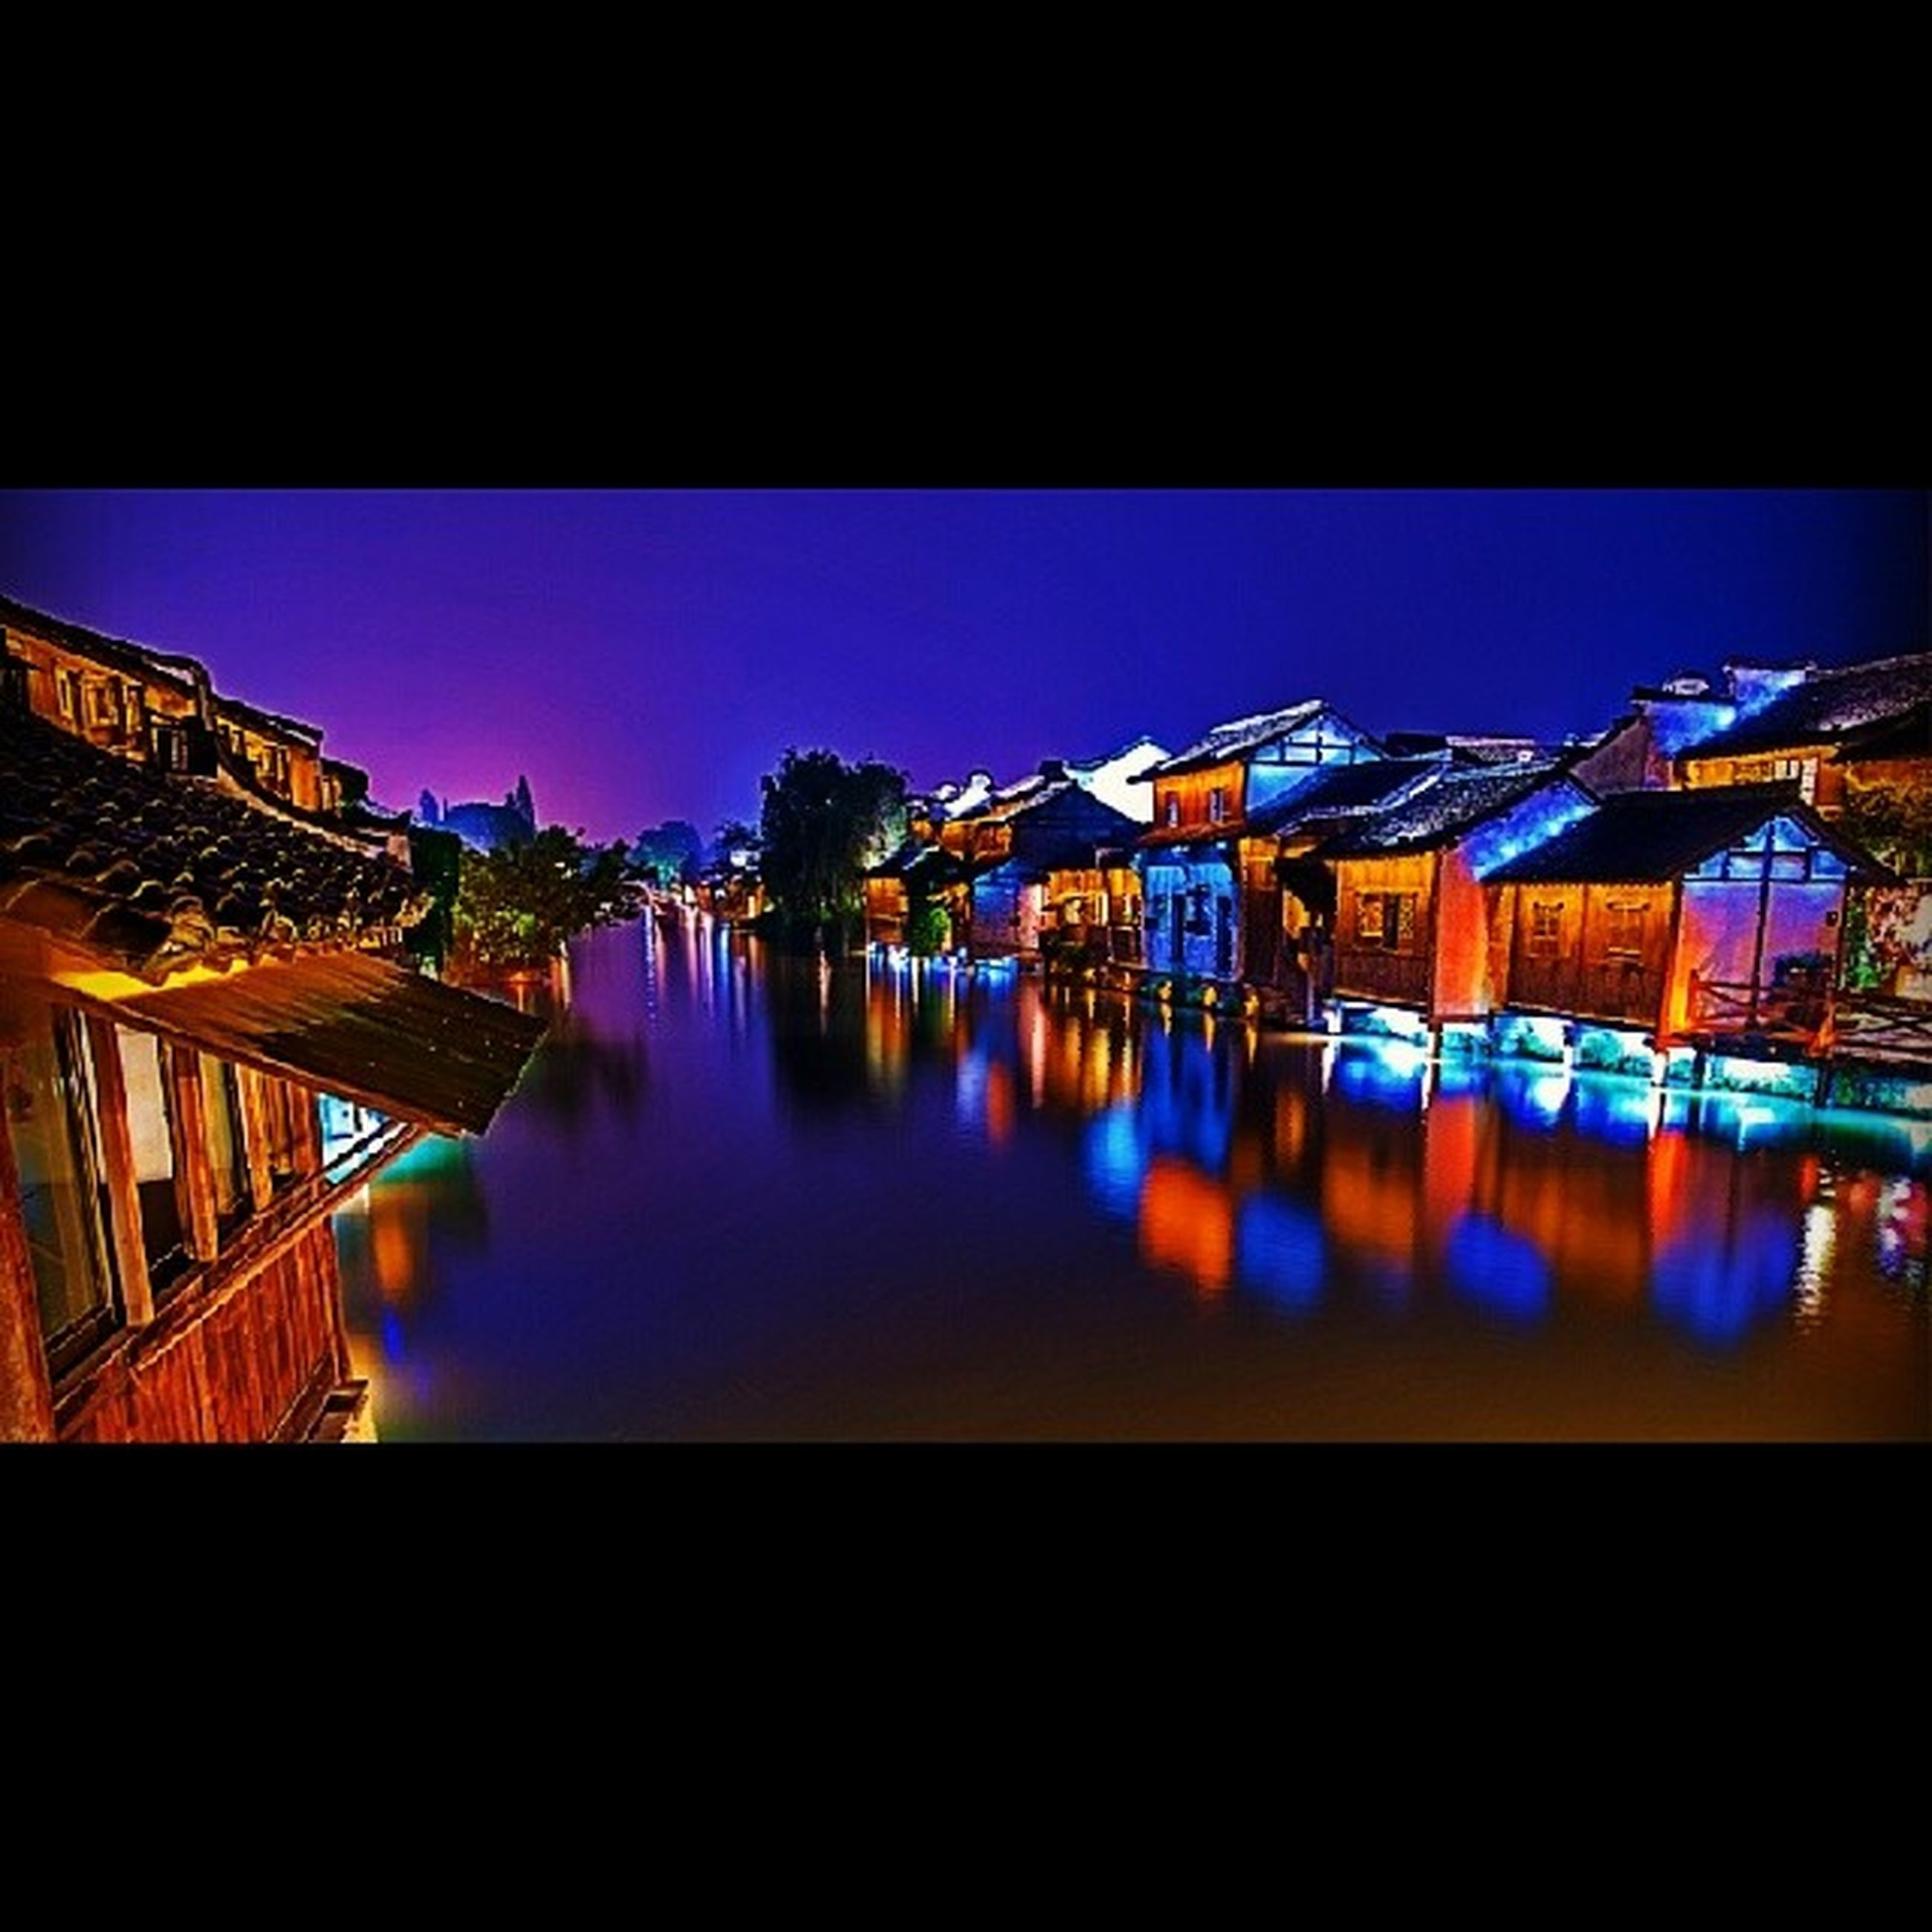 architecture, built structure, building exterior, reflection, water, illuminated, blue, clear sky, waterfront, residential structure, river, sky, house, city, night, residential building, canal, copy space, standing water, outdoors